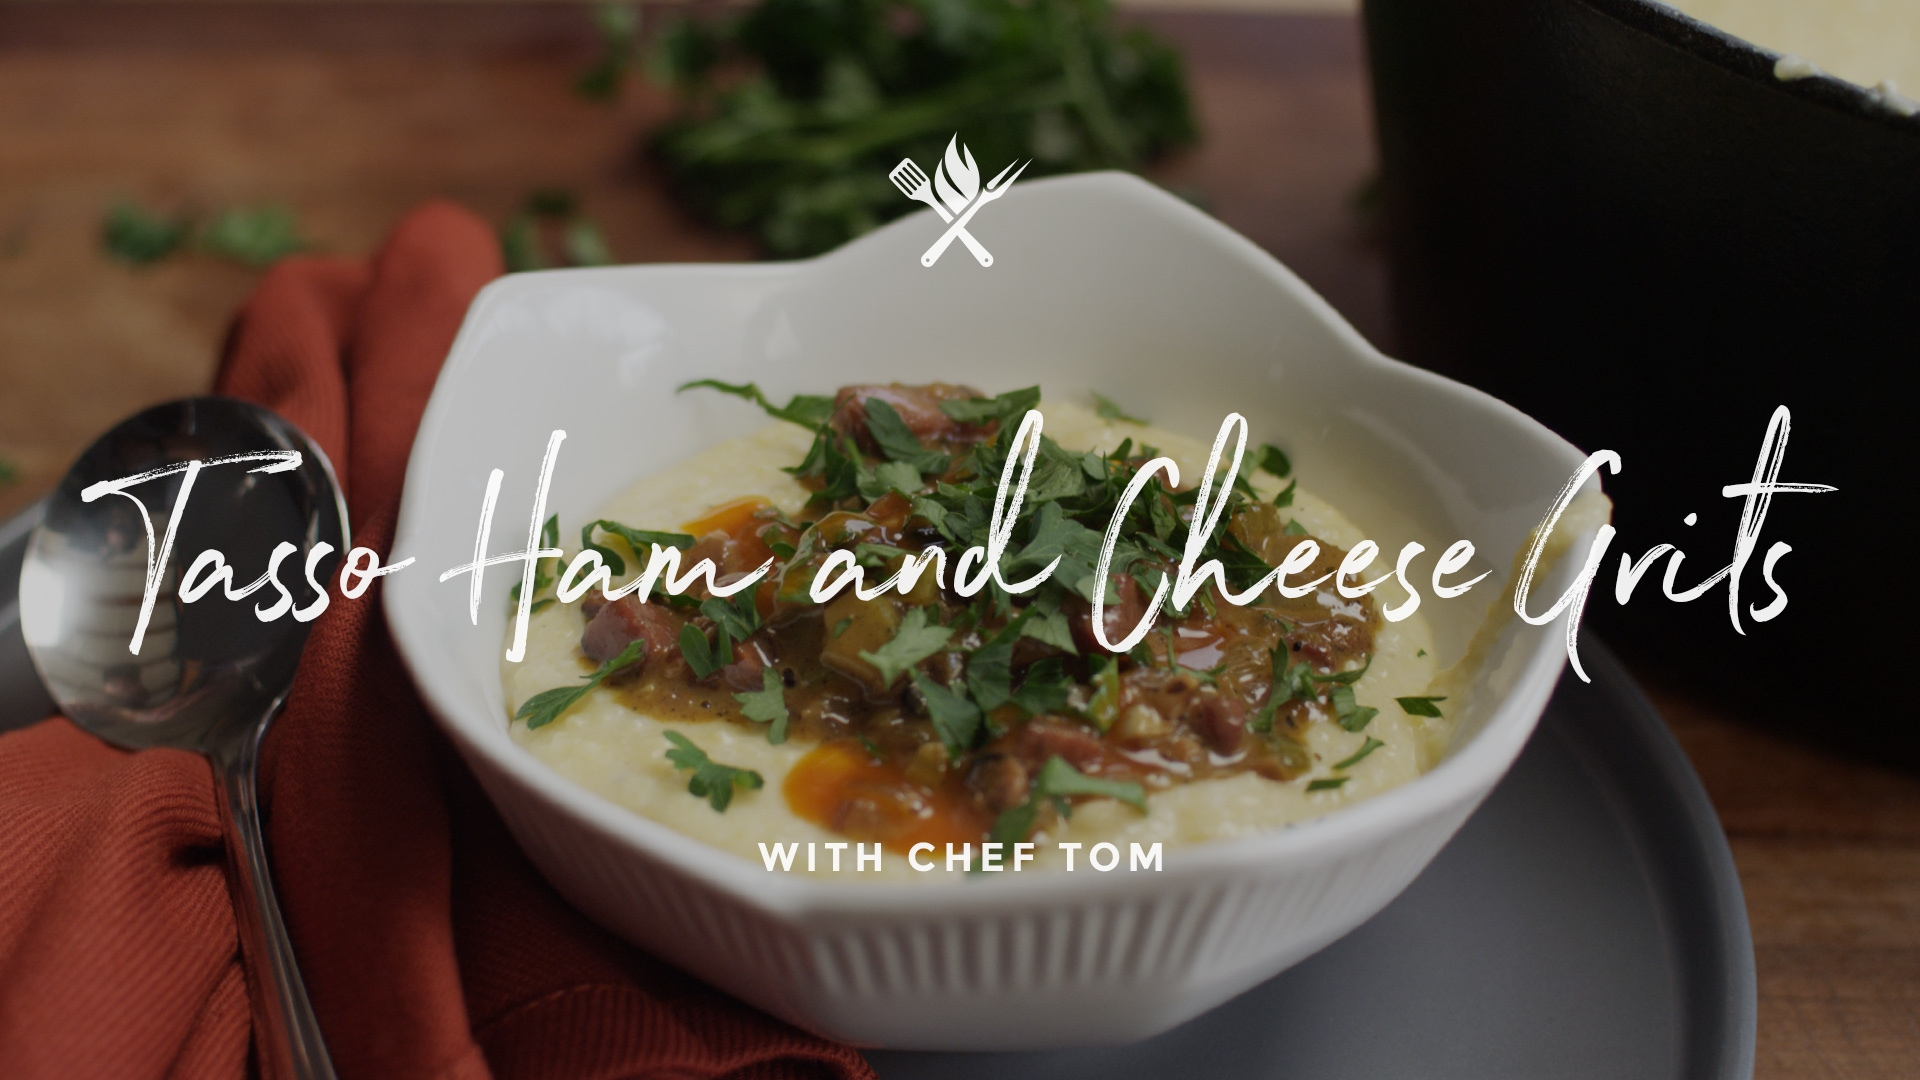 How to make Tasso Ham & Cheese Grits